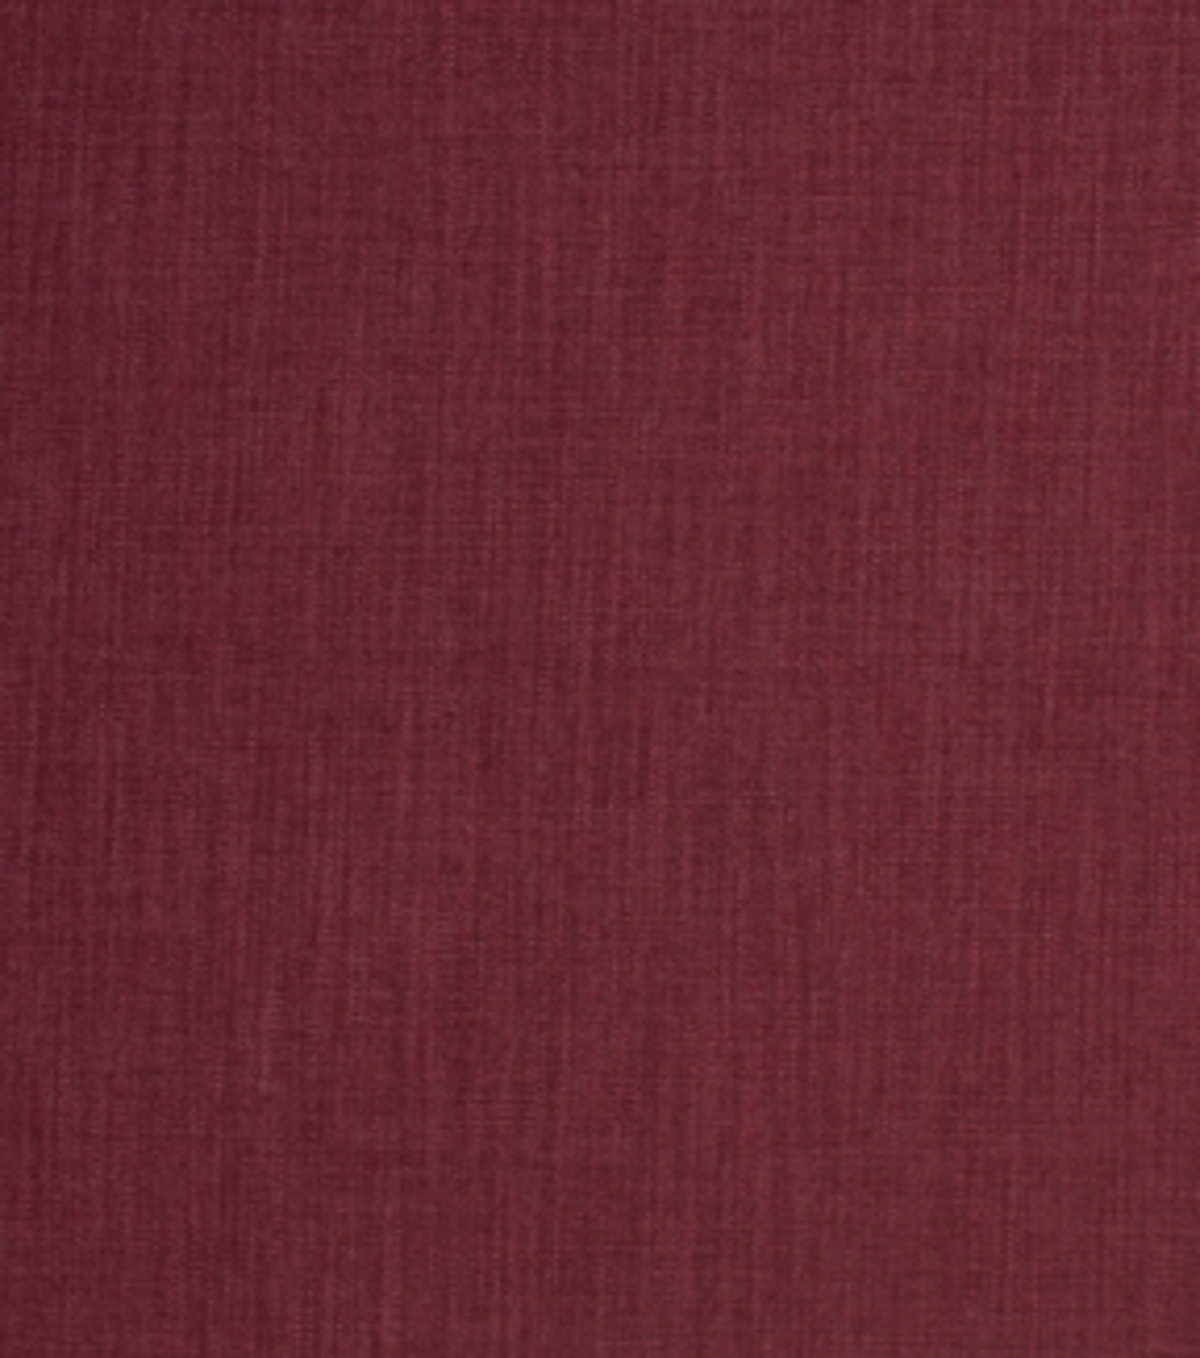 Home Decor 8\u0022x8\u0022 Fabric Swatch-Signature Series Media Magenta